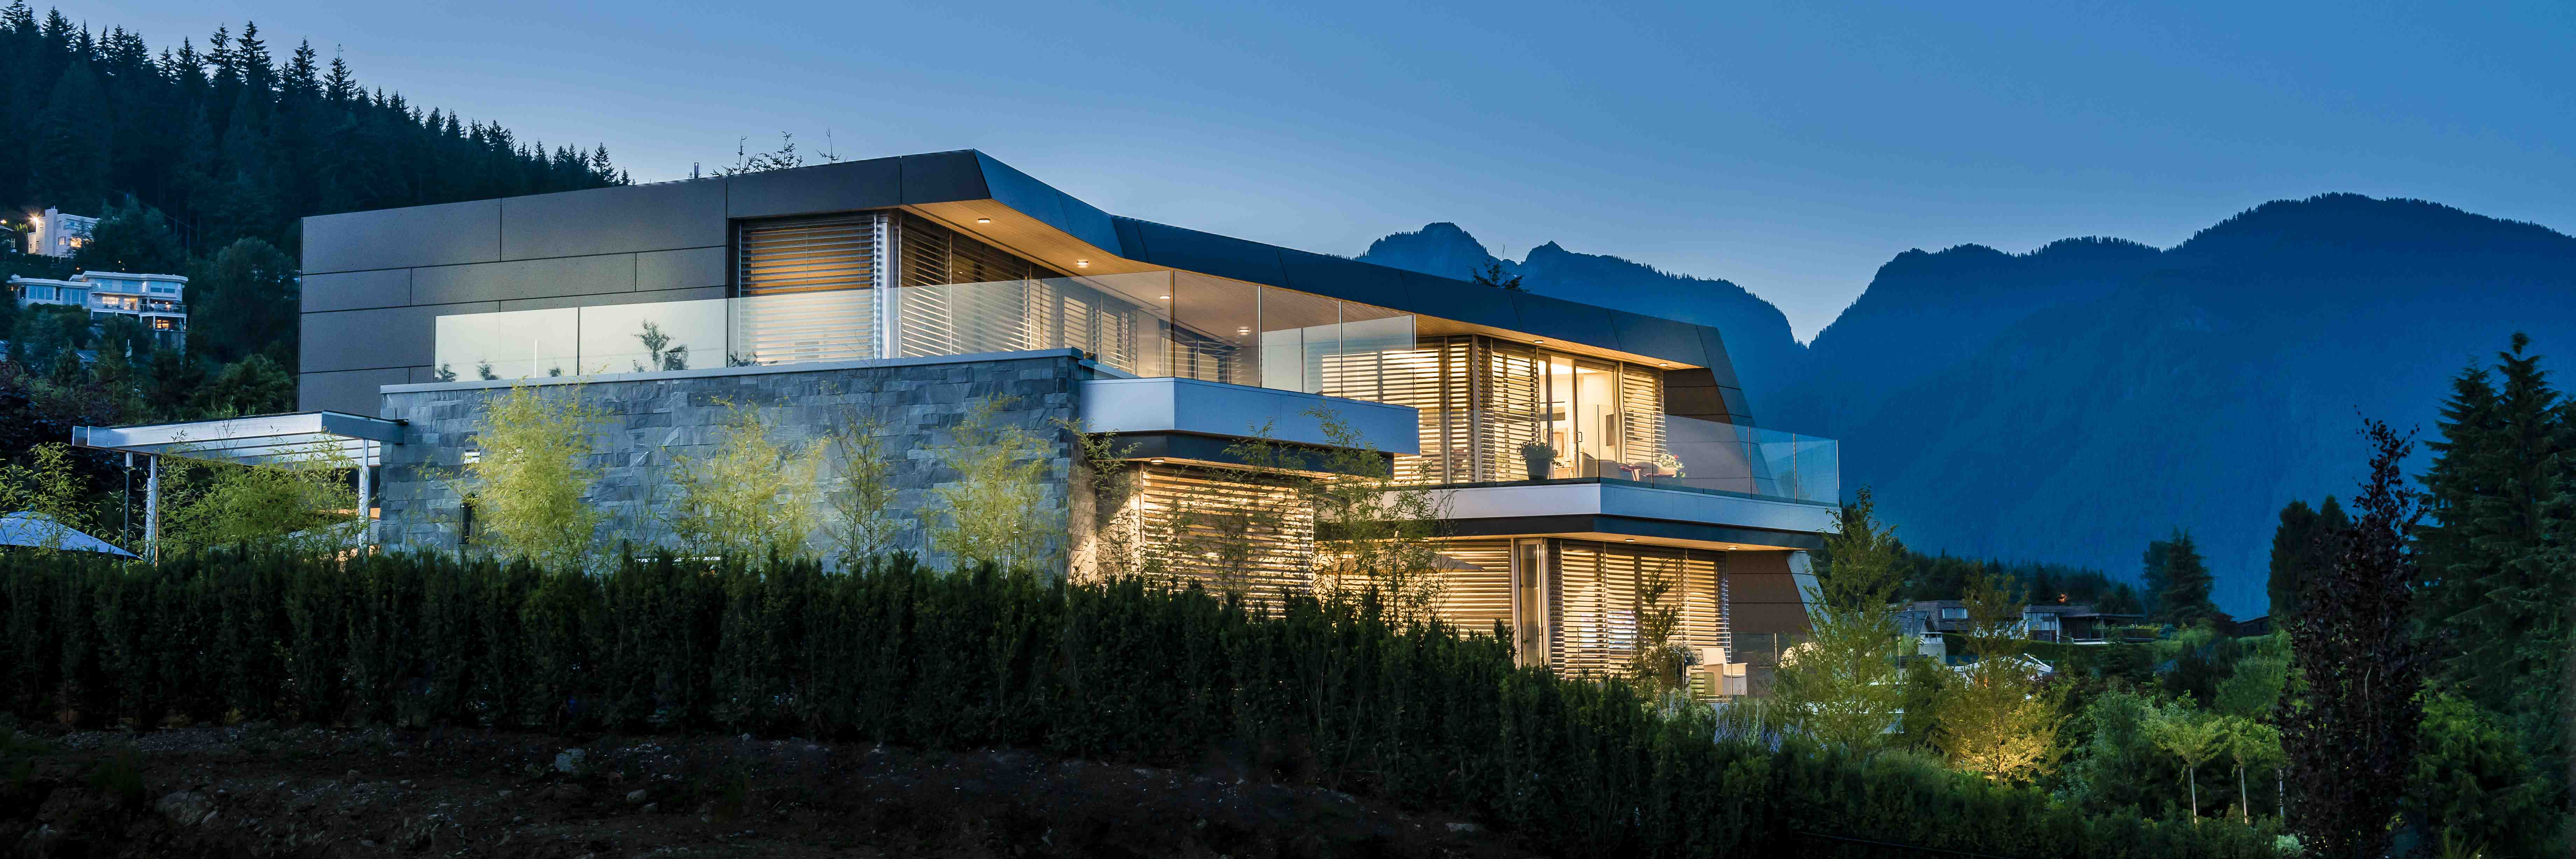 Explore vancouver s best modern home architecture in 2 days for Best house design vancouver